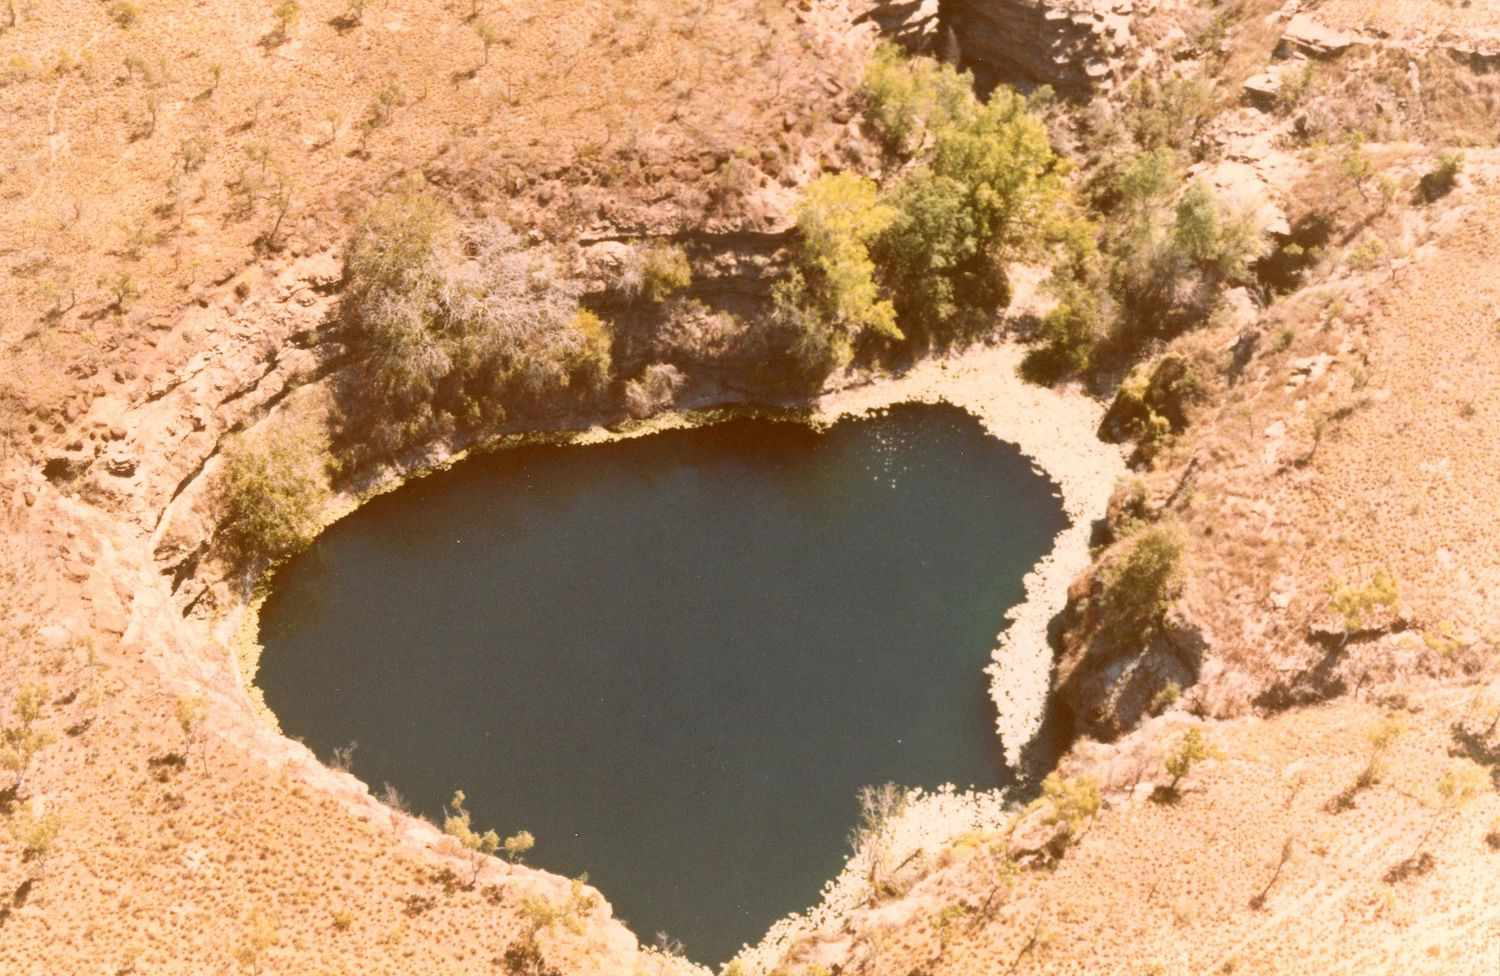 An aerial view of the Numby Numby sinkhole in Australia